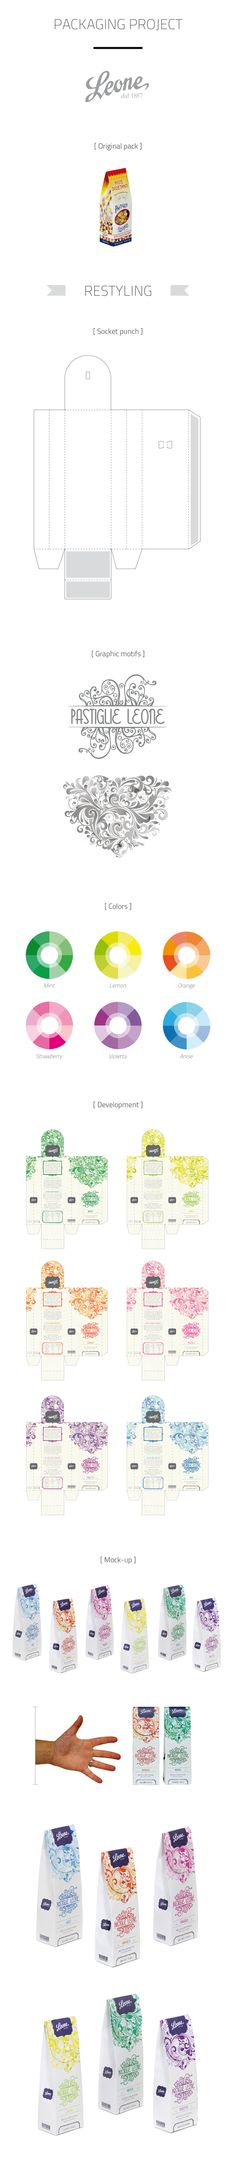 """Study devoted to the packaging redesign of food industry, in the specific case of the """"Leone"""" pads."""